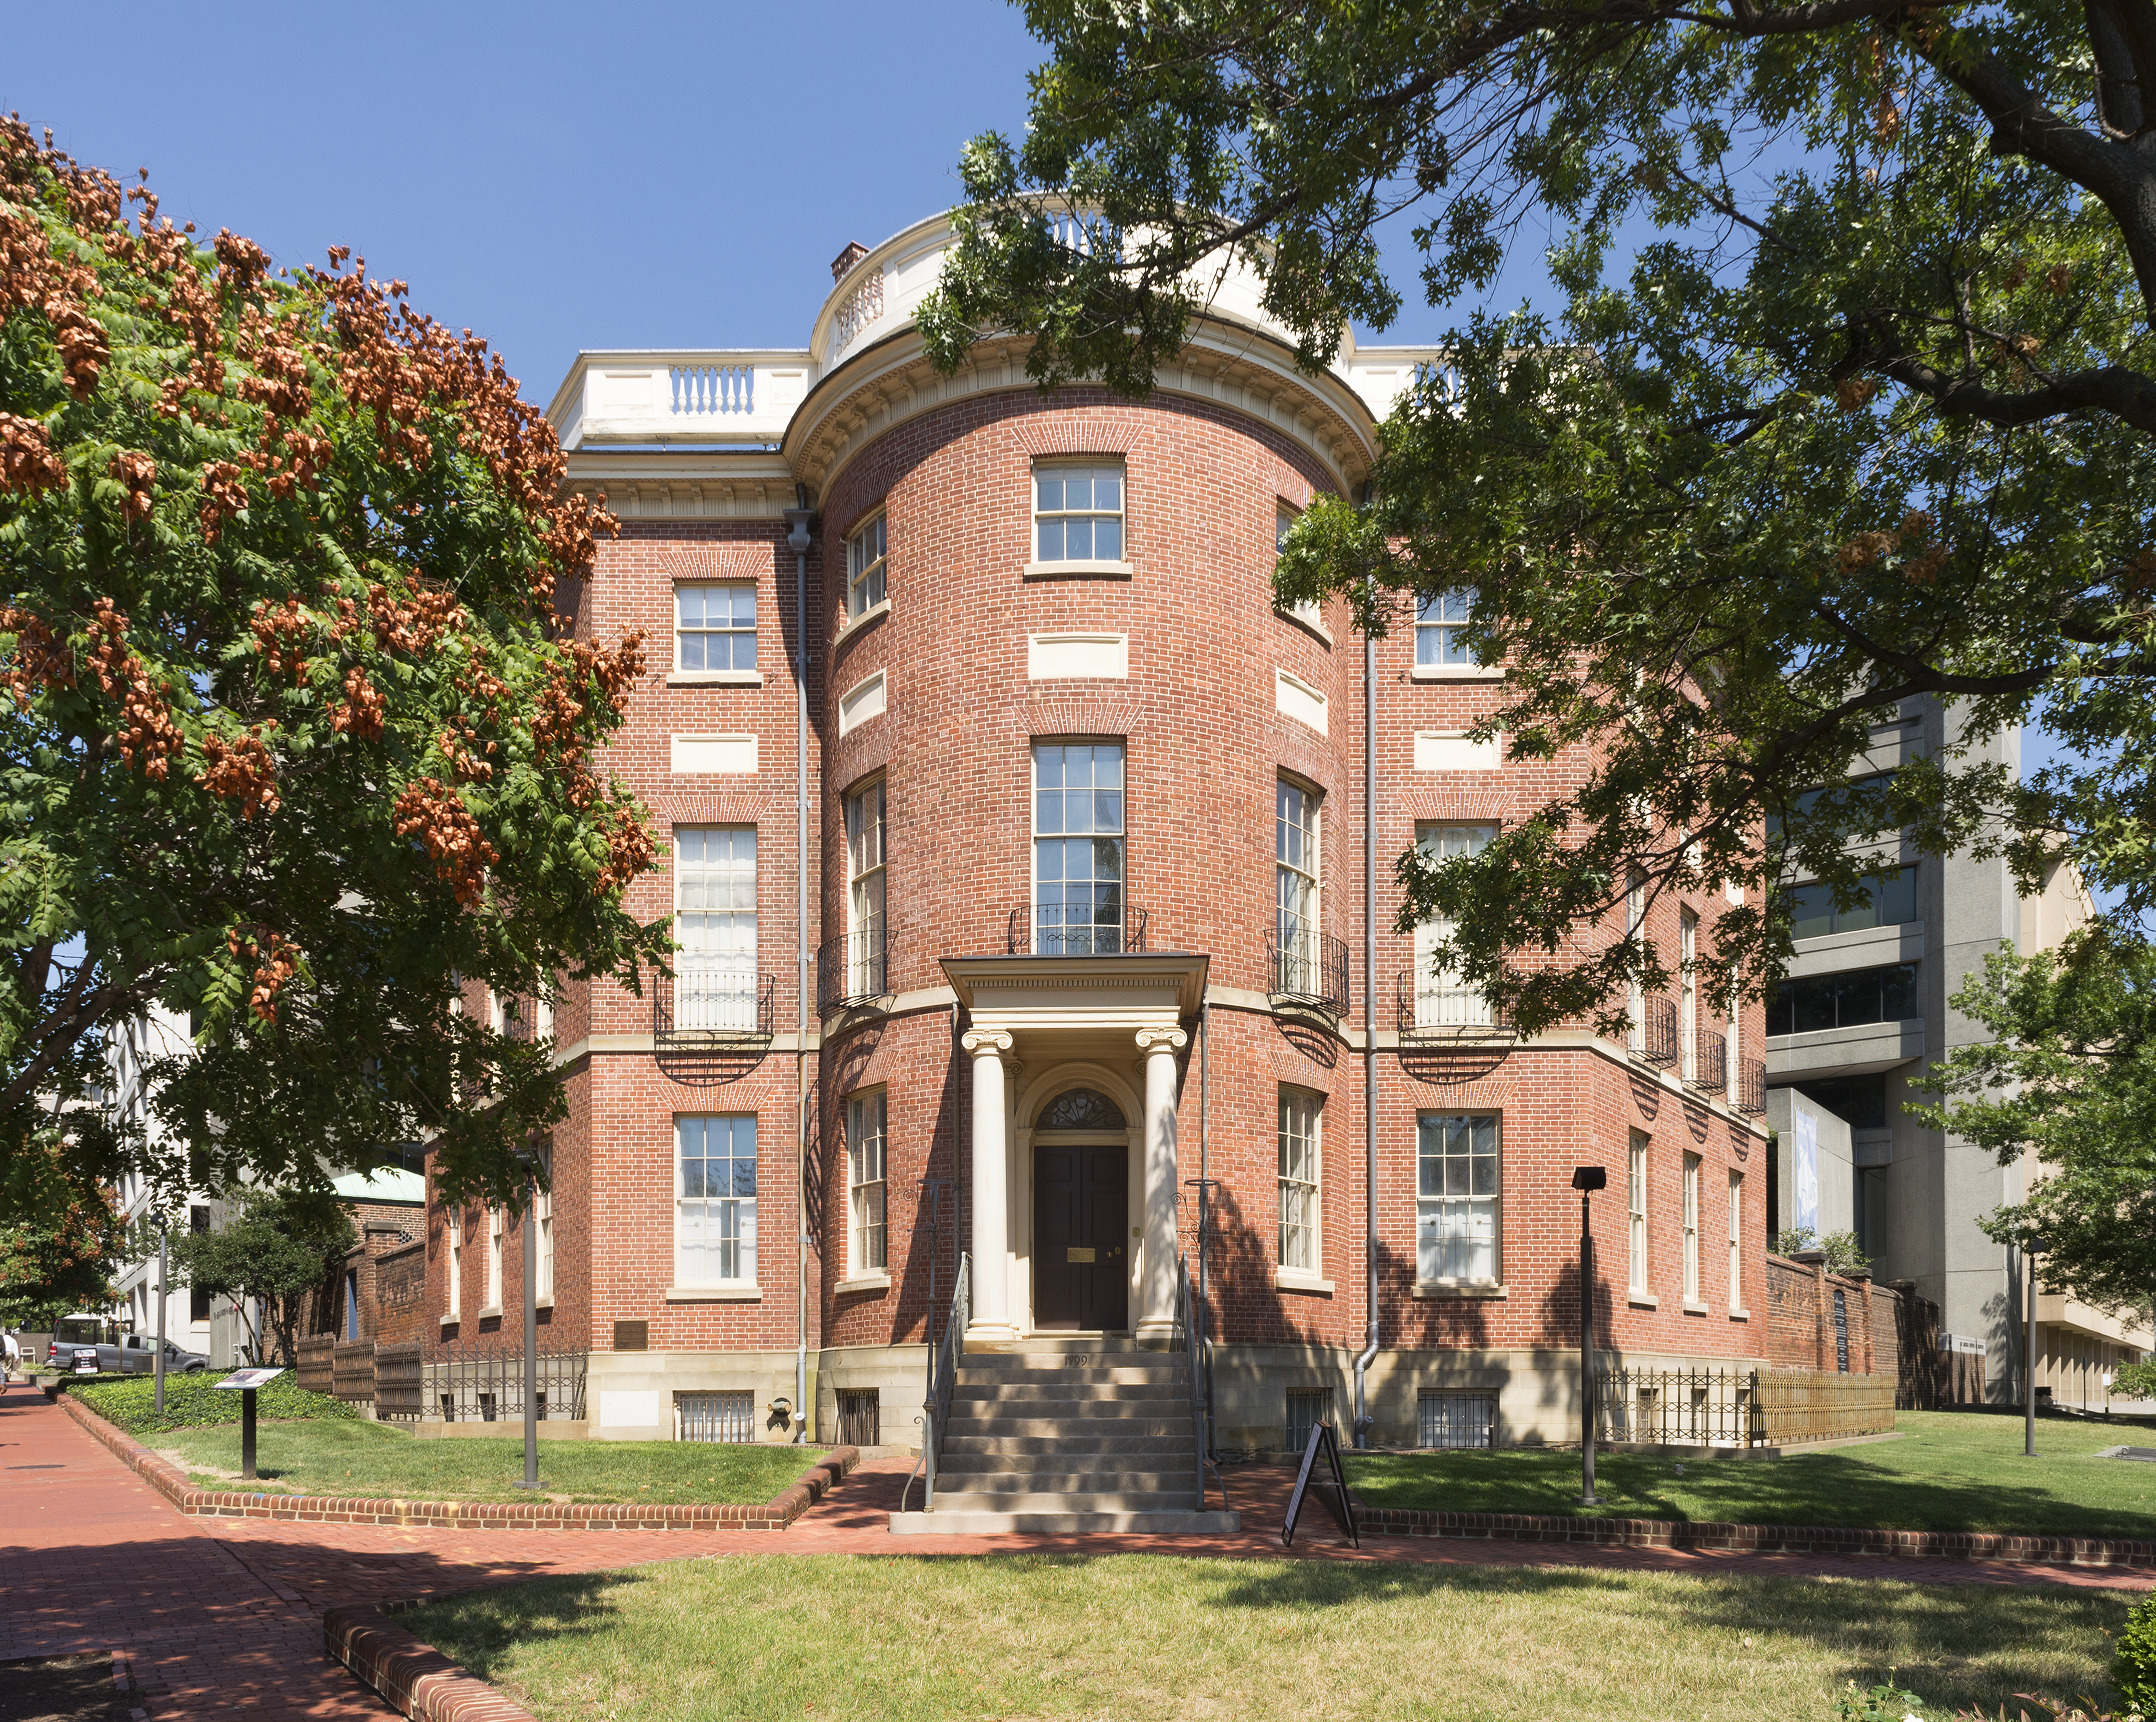 The Octagon house in the USA